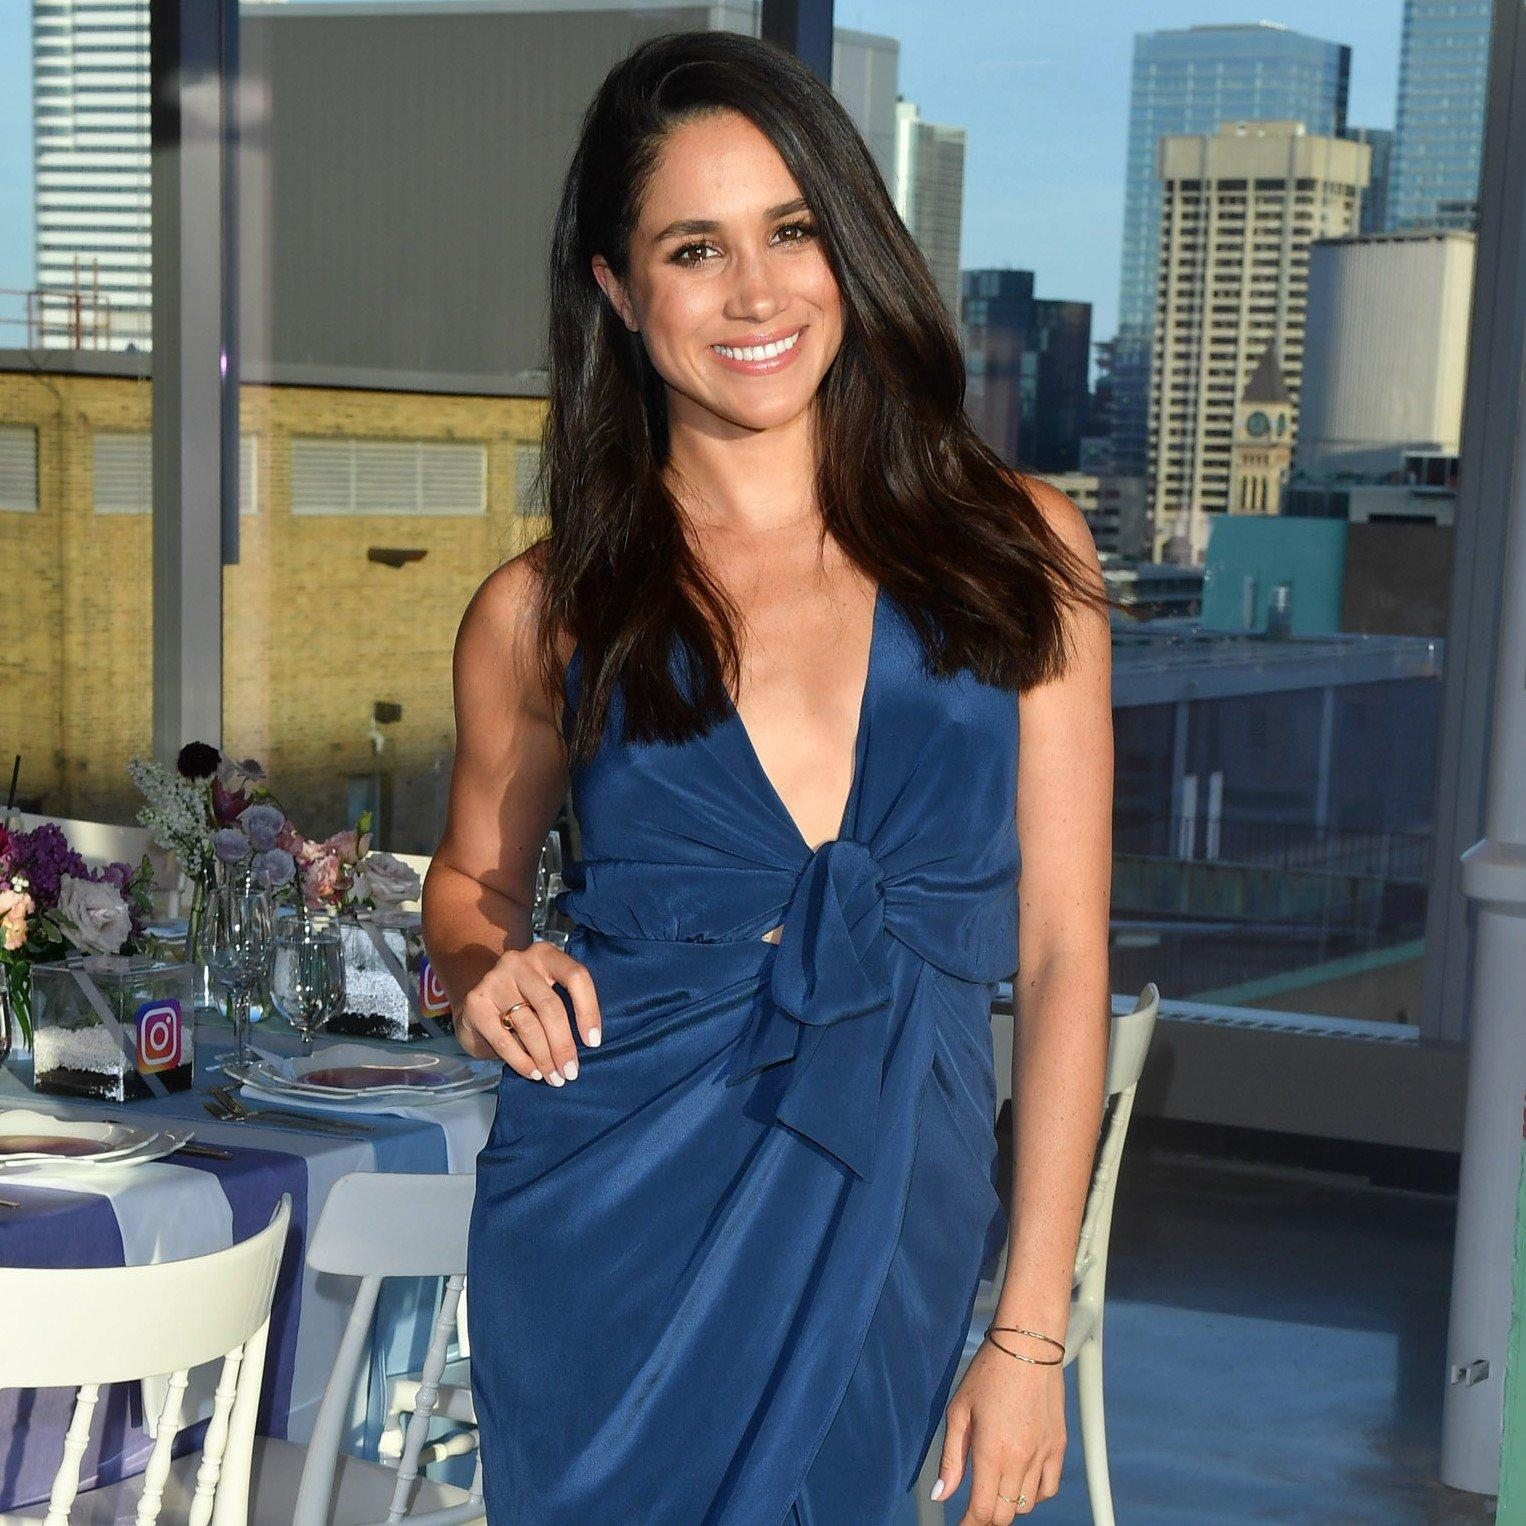 Meghan Markle Meeting The Queen Could Mean Nothing Or